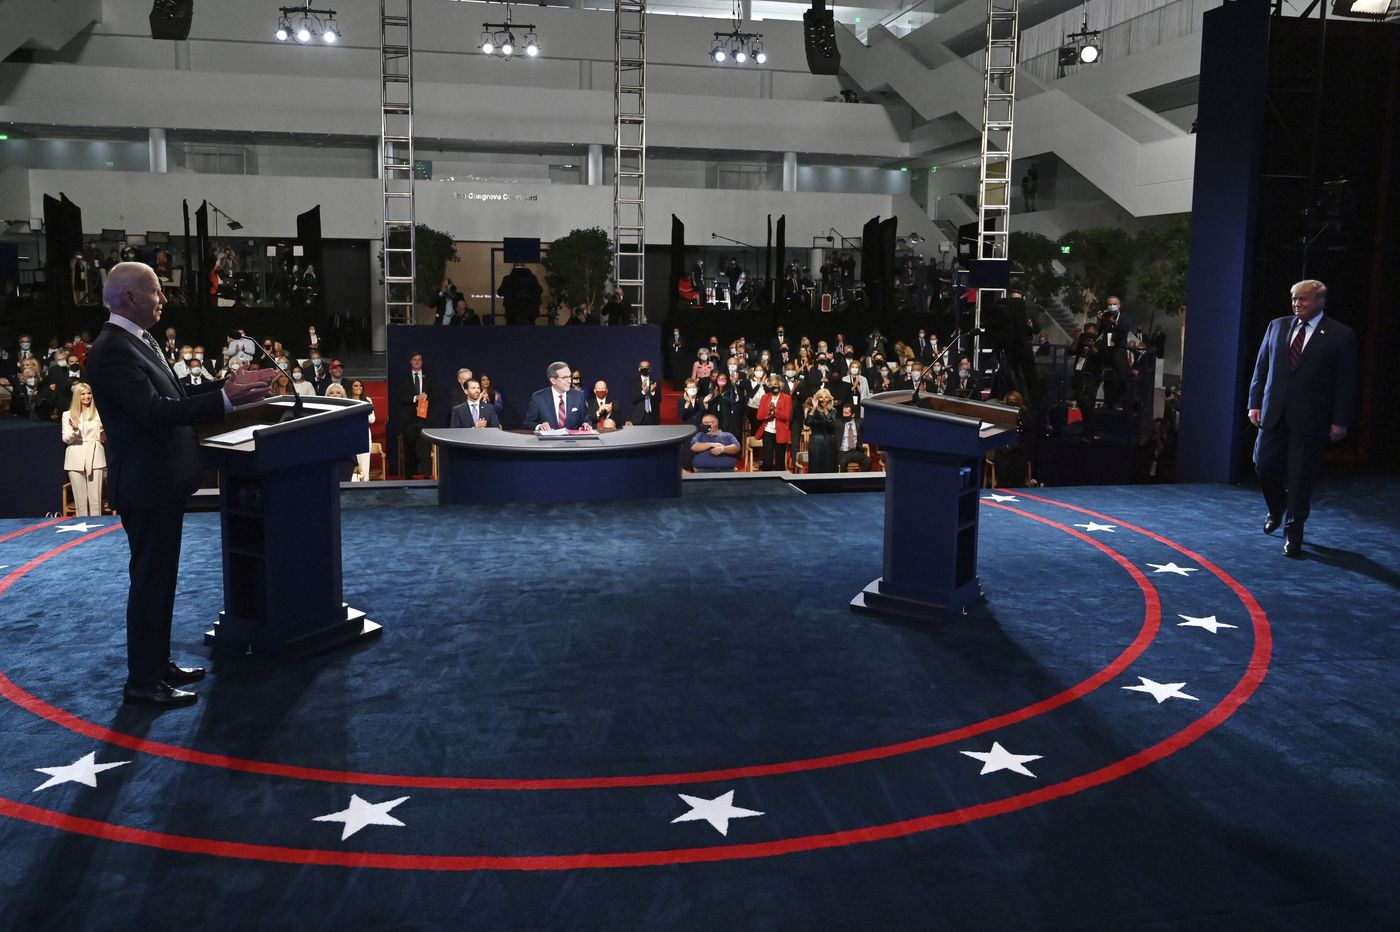 Presidential debate commission says it will tweak the format after chaos marked the first Trump-Biden meeting